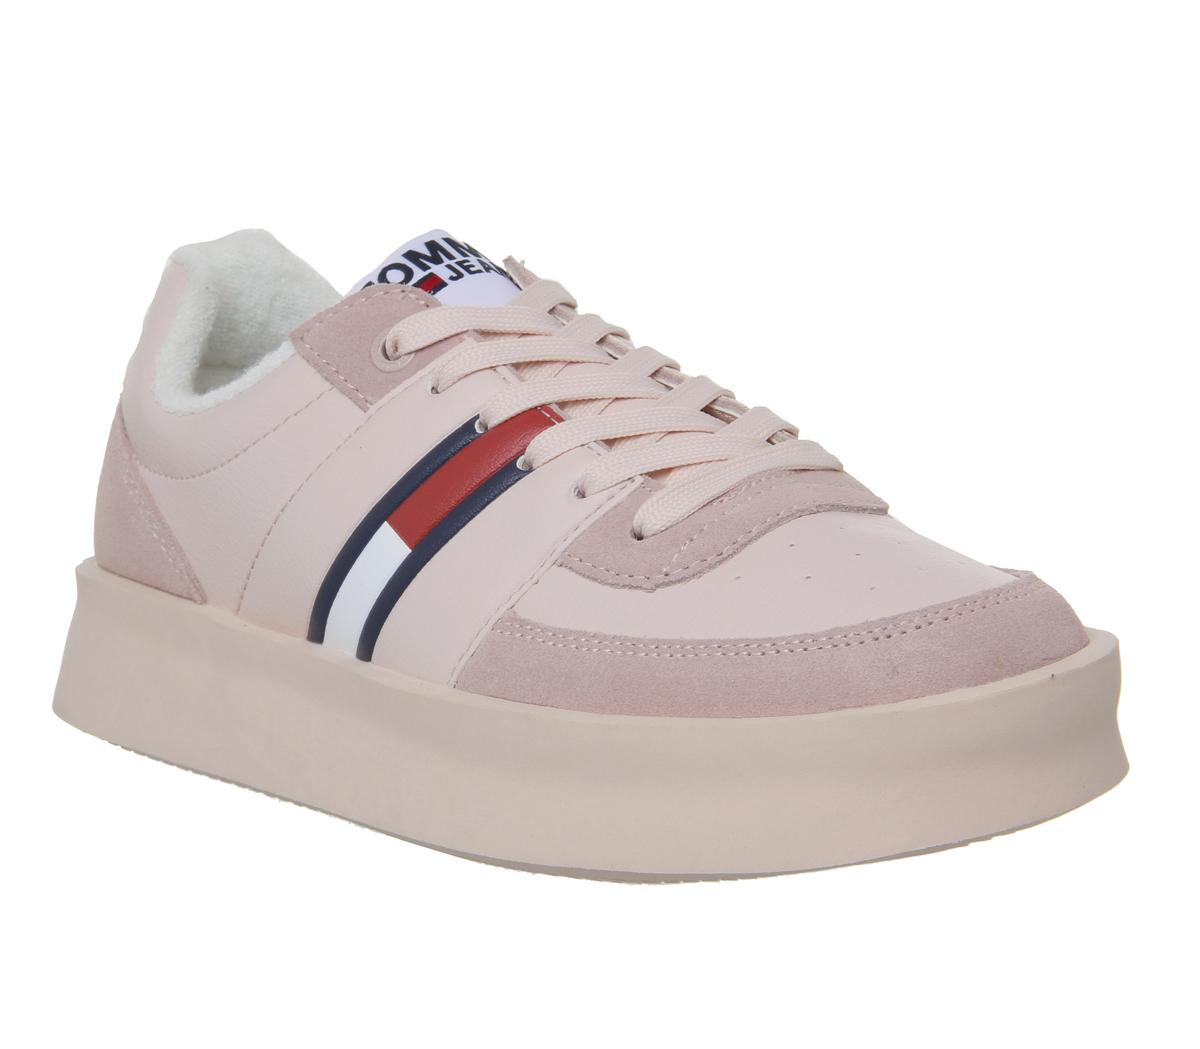 Tommy Hilfiger Light Sneakers Silver